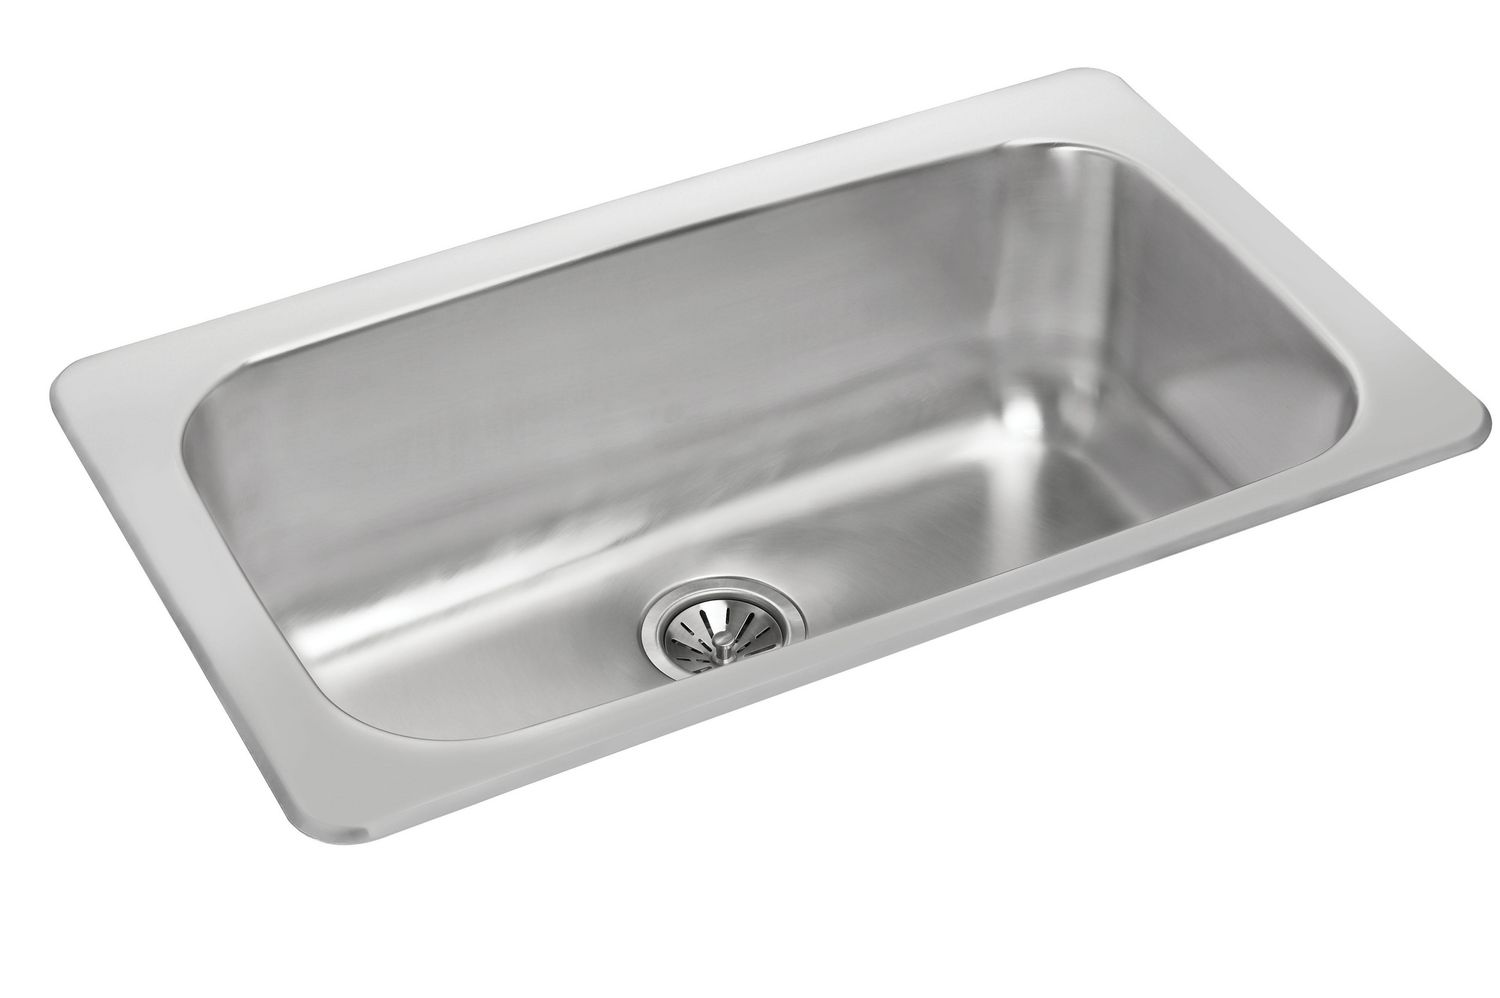 Wessan Single Bowl Utility Sink Walmart Canada